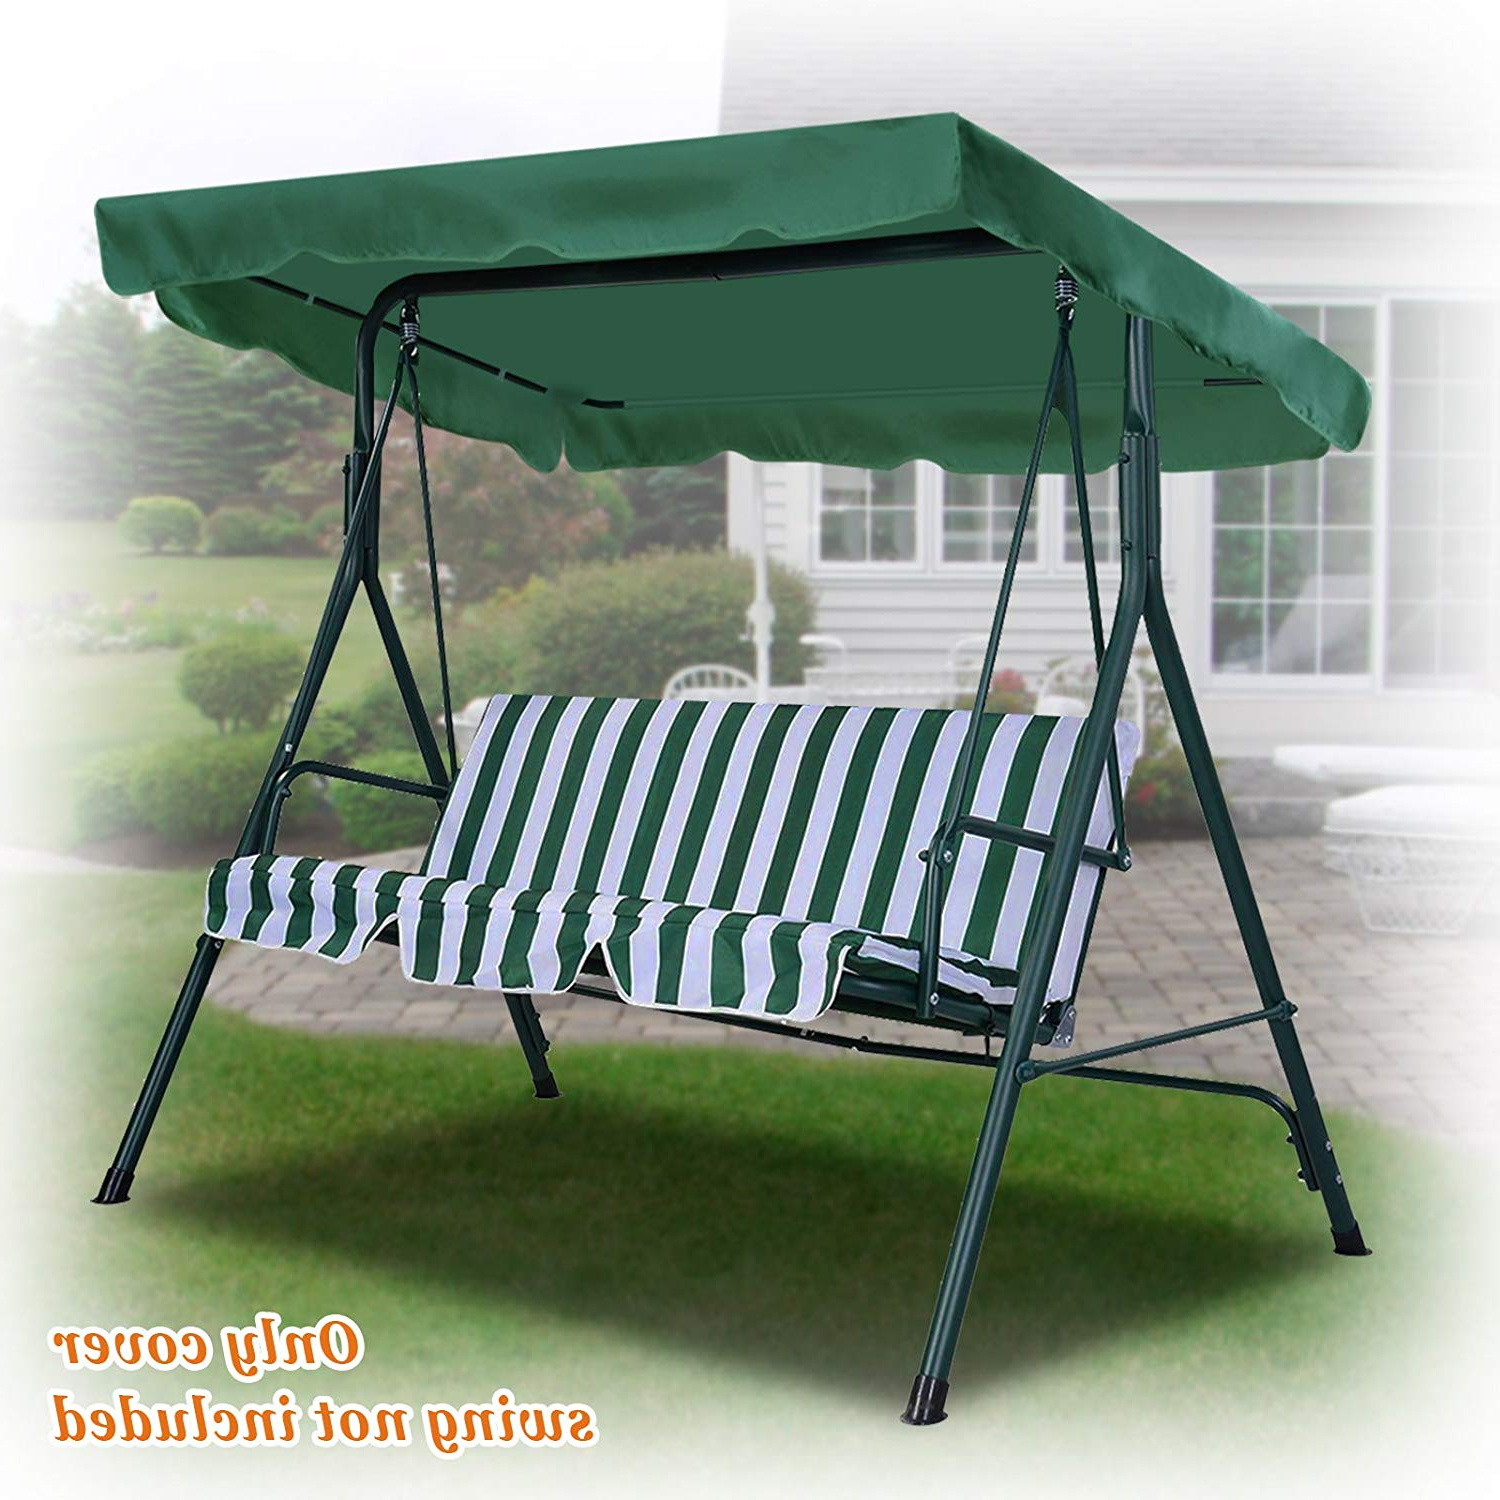 "Patio Gazebo Porch Canopy Swings With Newest Benefitusa Benefitusa Replacement Porch Top Cover For Patio Outdoor Swing Seat Furniture (73""x52"", Green) (View 14 of 30)"